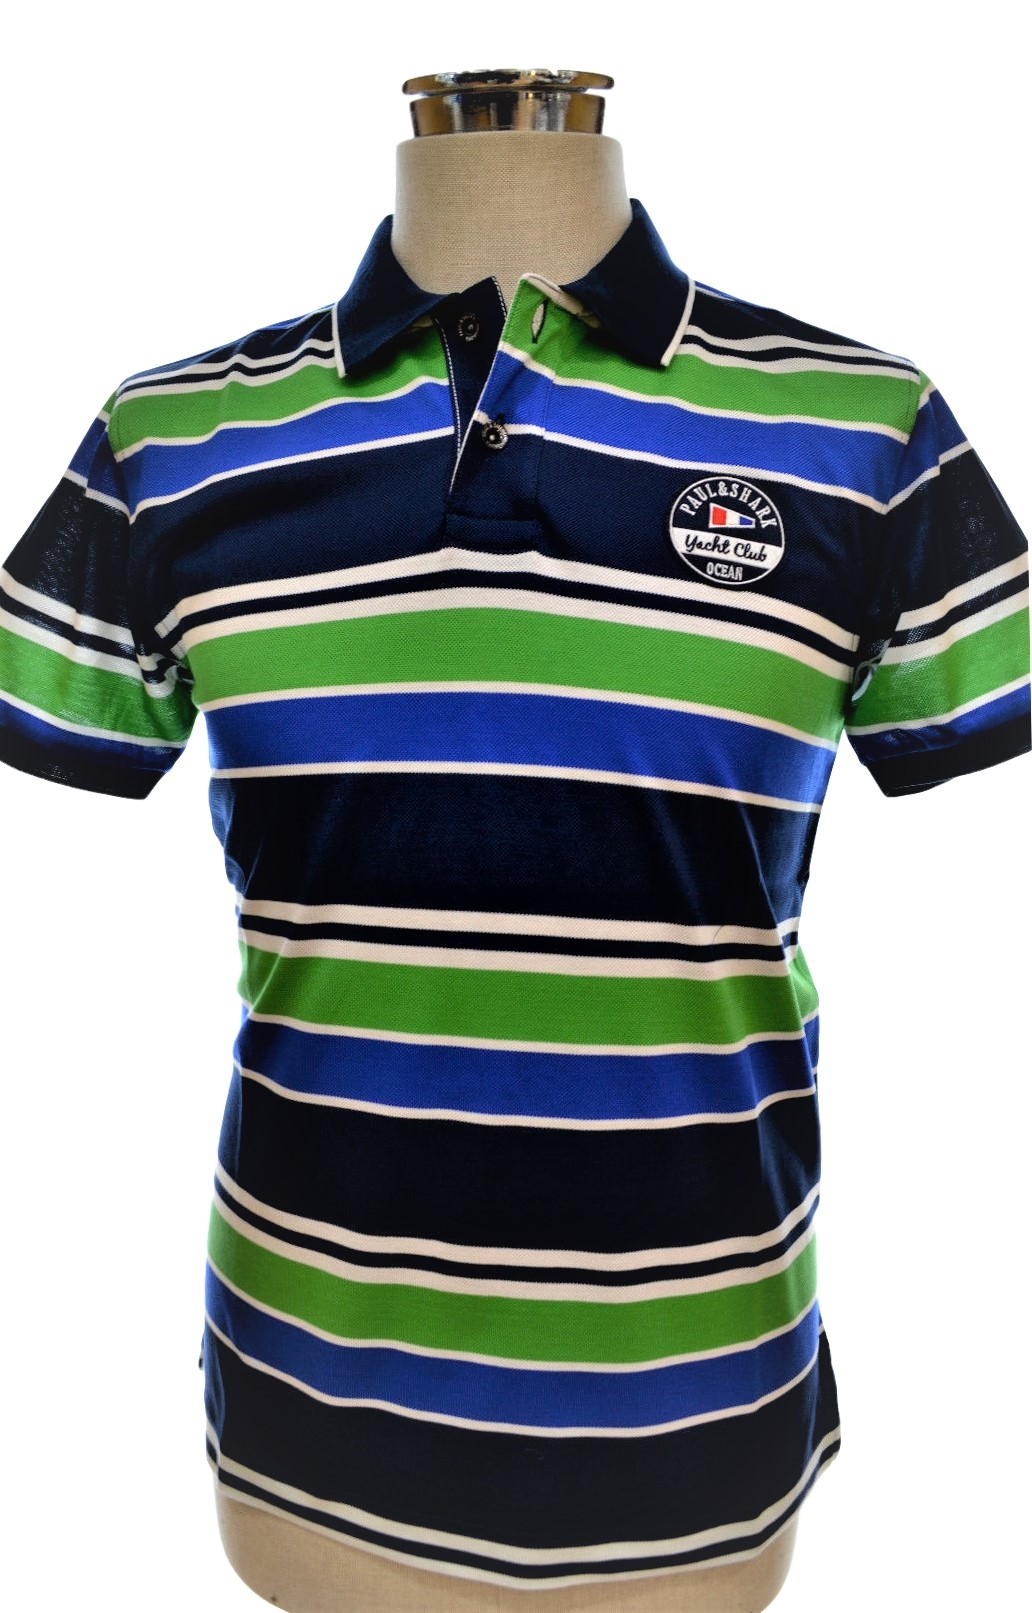 Paul Shark Yacht Club Ocean POLO e15p0910sf SLIM FIT COLOR 336 Lines